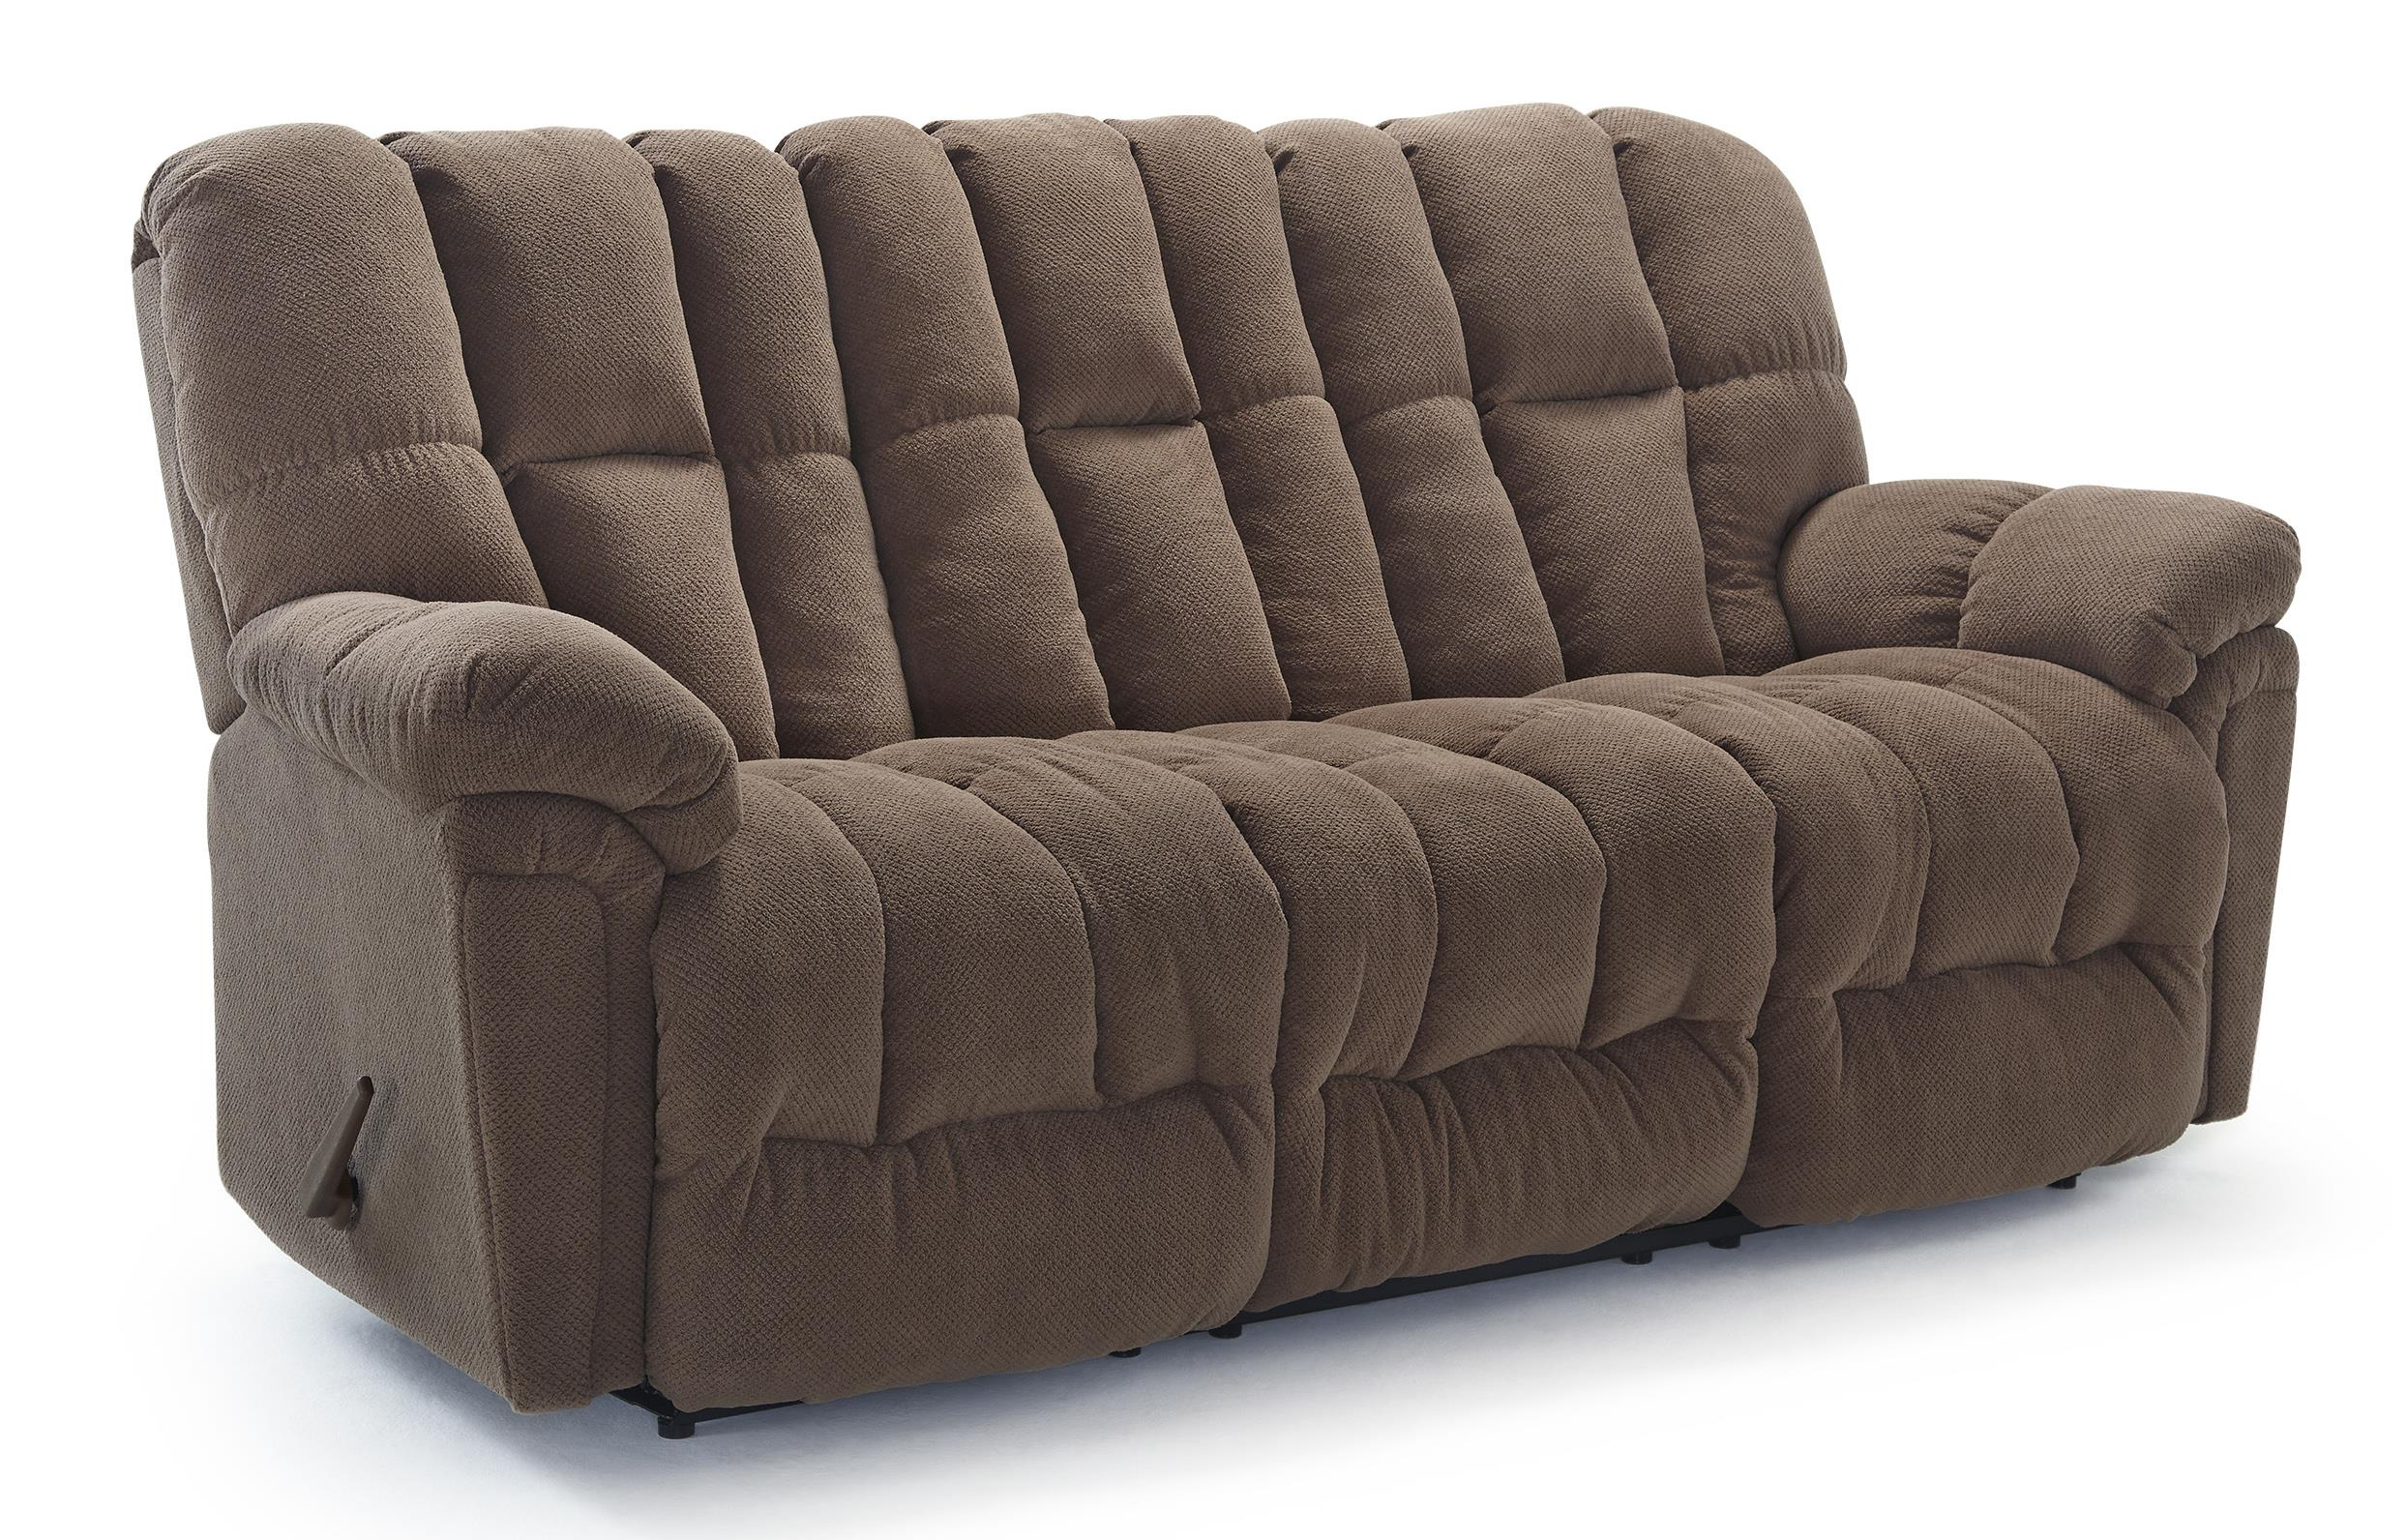 Lucas Power Reclining Sofa by Best Home Furnishings at Best Home Furnishings